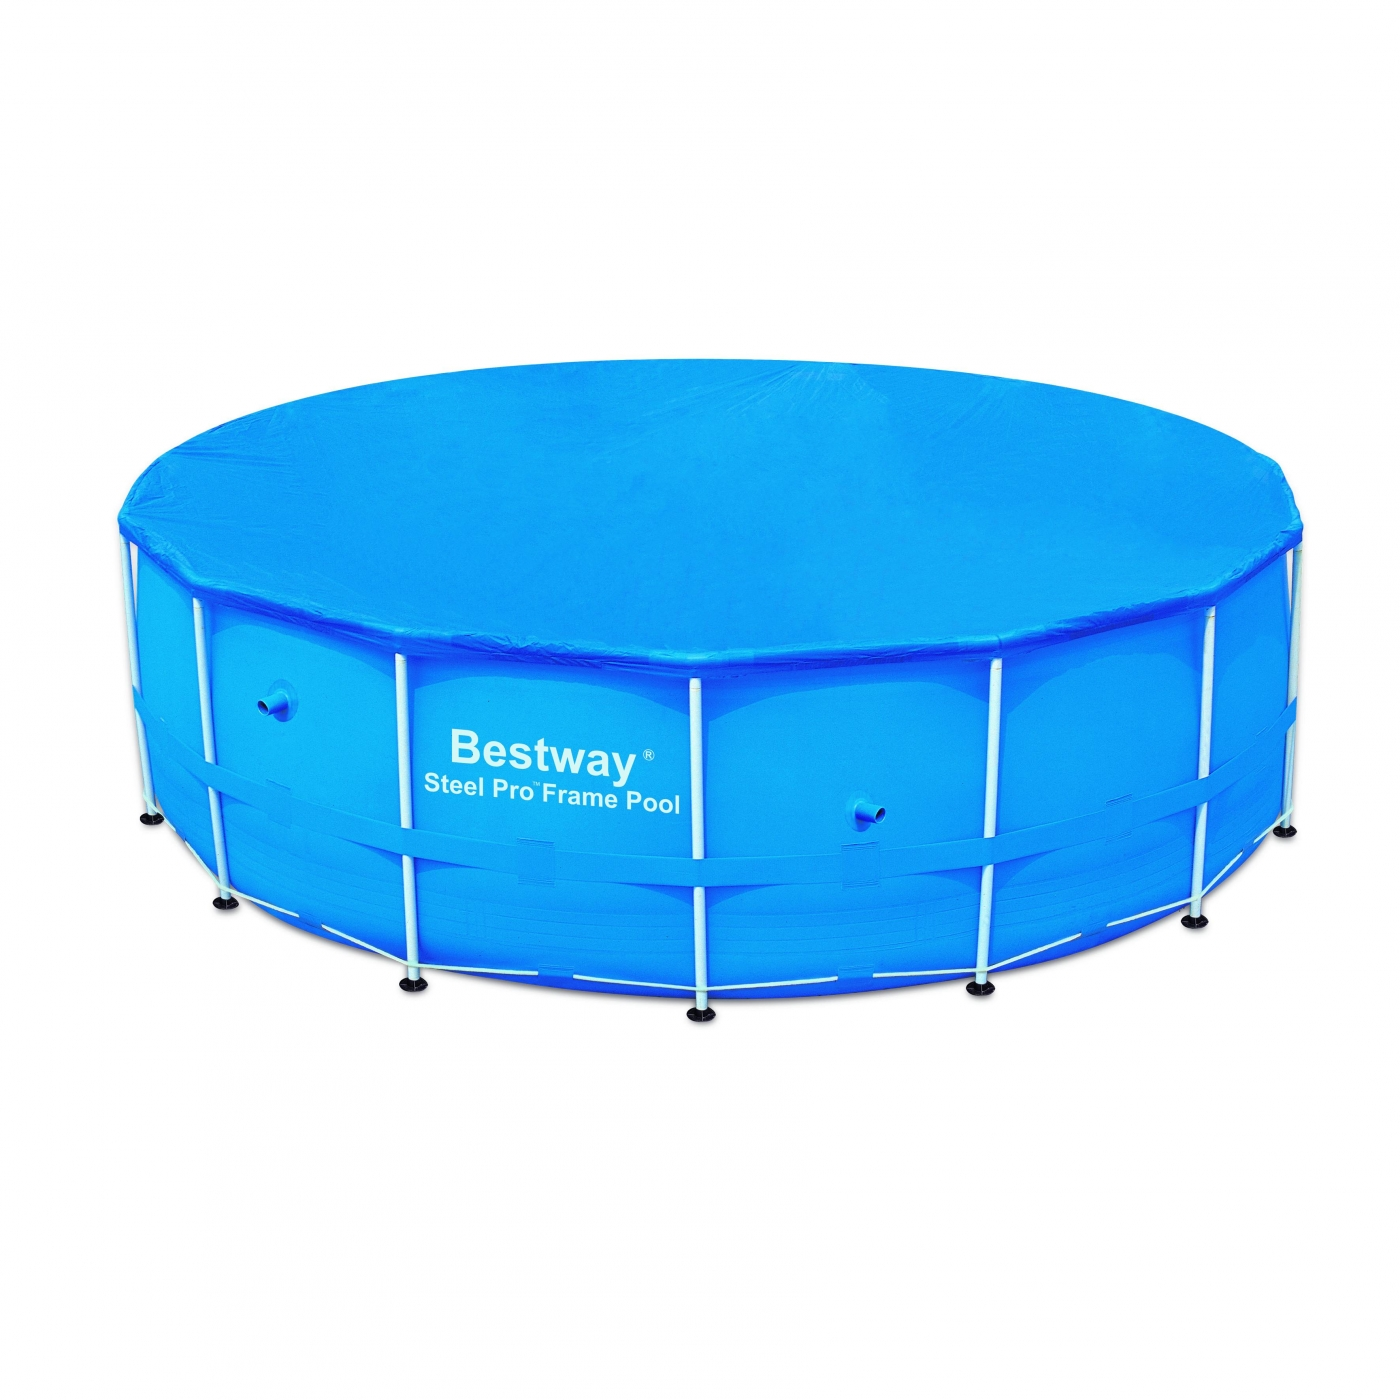 Cobertor piscina steel pool 457 cm por 37 95 em planeta for Cobertor piscina